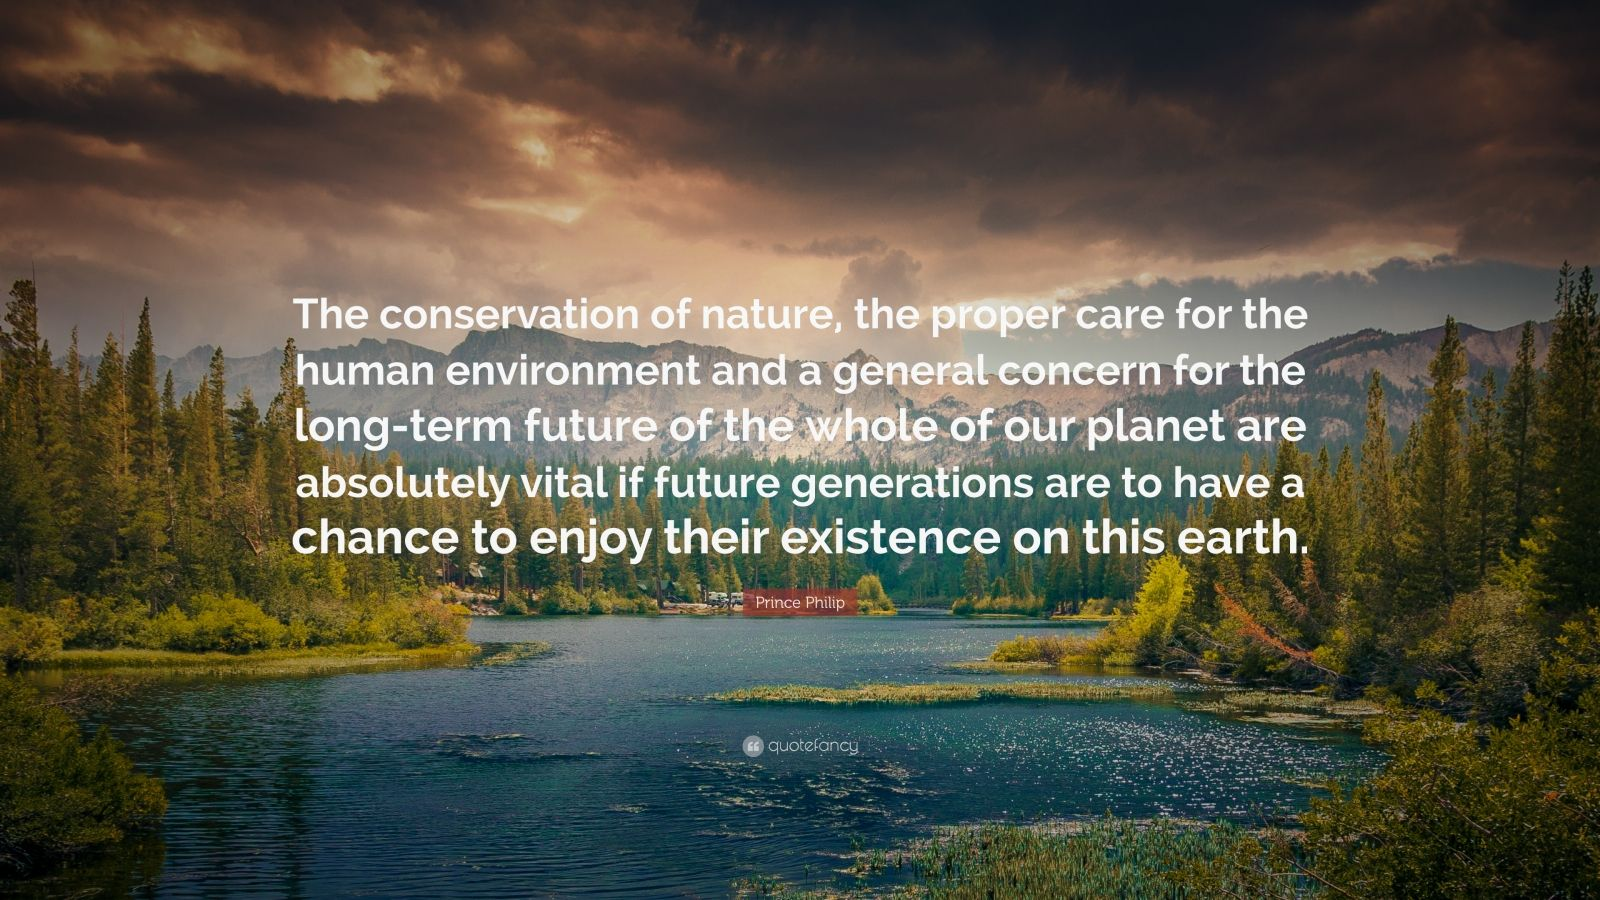 nature phenomenal and peoples contribution that affects the environment